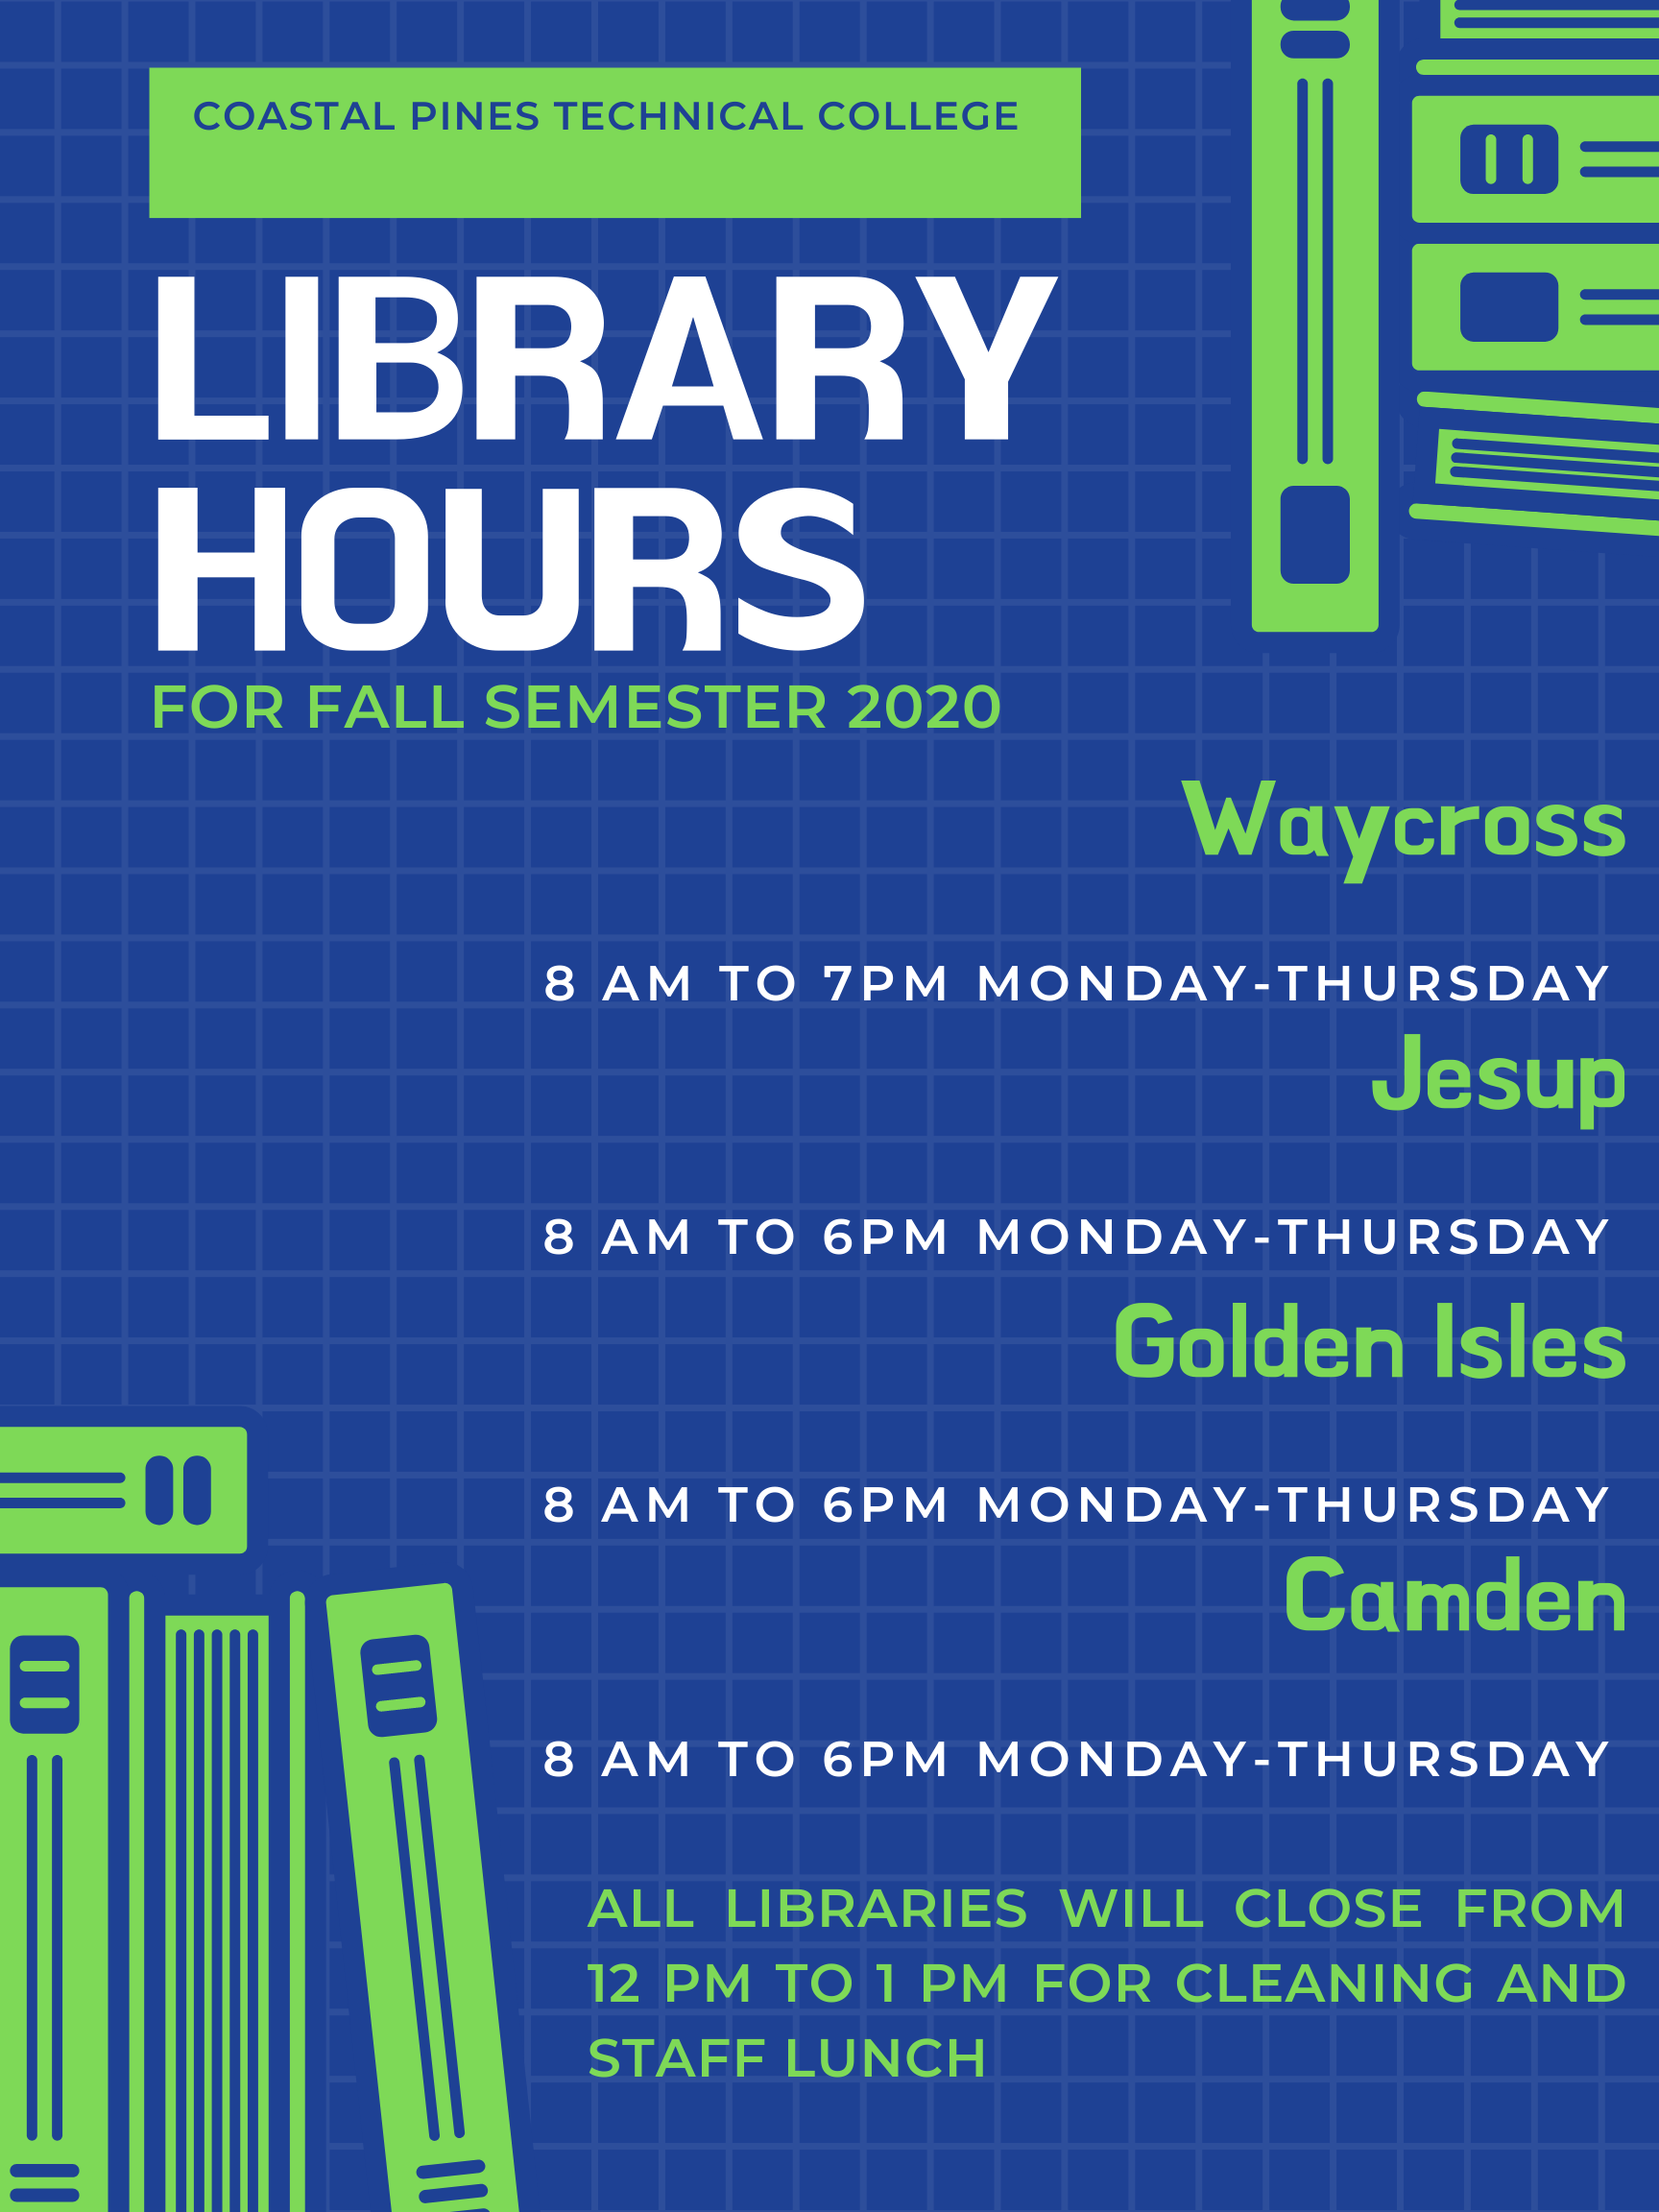 CPTC Library Services Fall 2020 Hours Poster: Waycross Mon-Thurs: 8 AM - 7 PM, Jesup Mon-Thurs: 8 AM - 6 PM, Golden Isles: Mon-Thurs: 8 AM - 6 PM, Camden: Mon-Thurs: 8 AM - 6 PM. All libraries will be closed from 12 PM - 1 PM for cleaning and staff lunch.